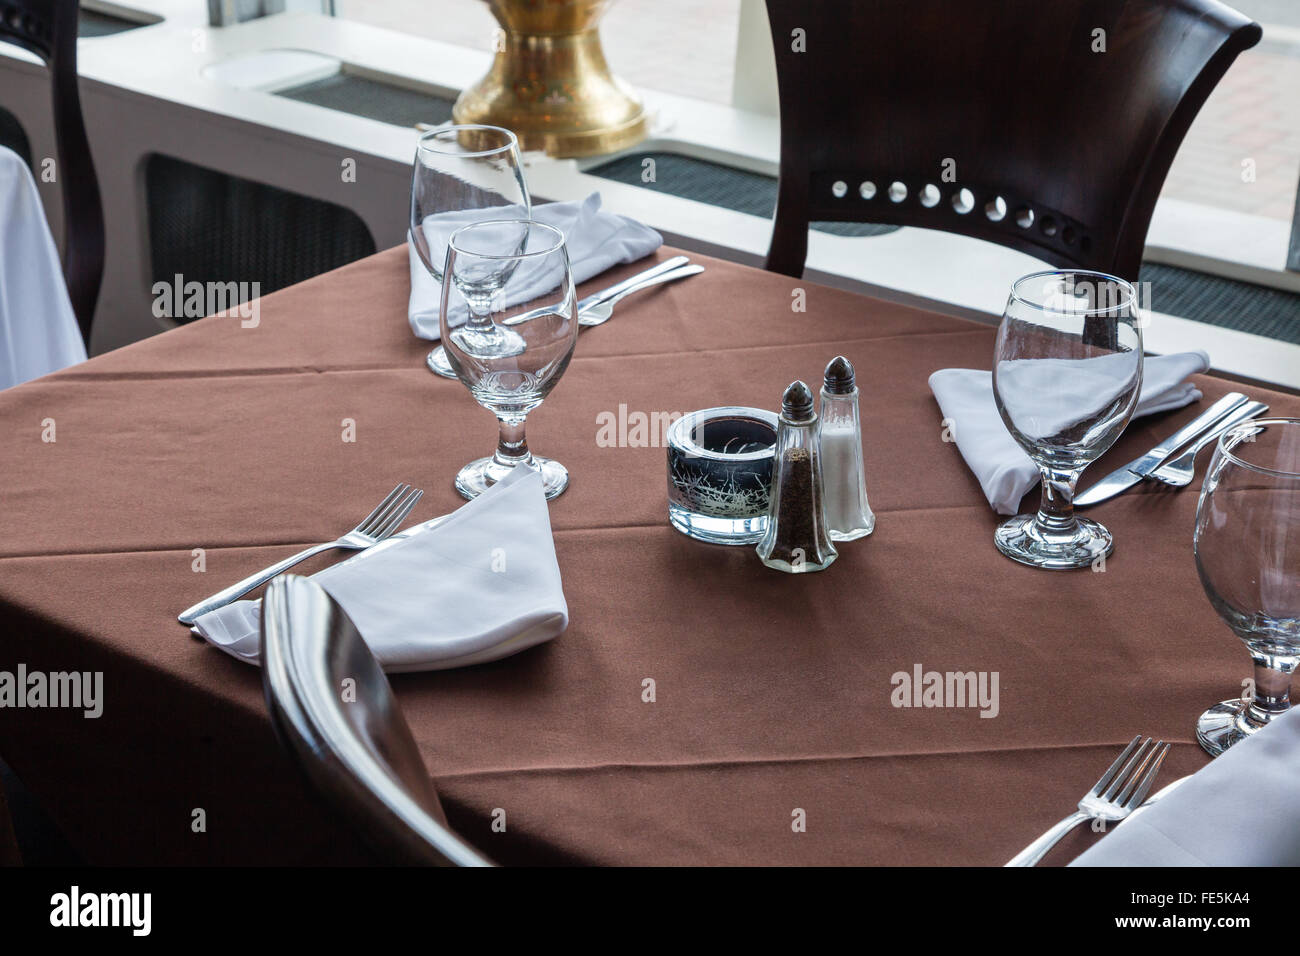 Casual table for two setting with brown table cloth and glassware. - Stock Image